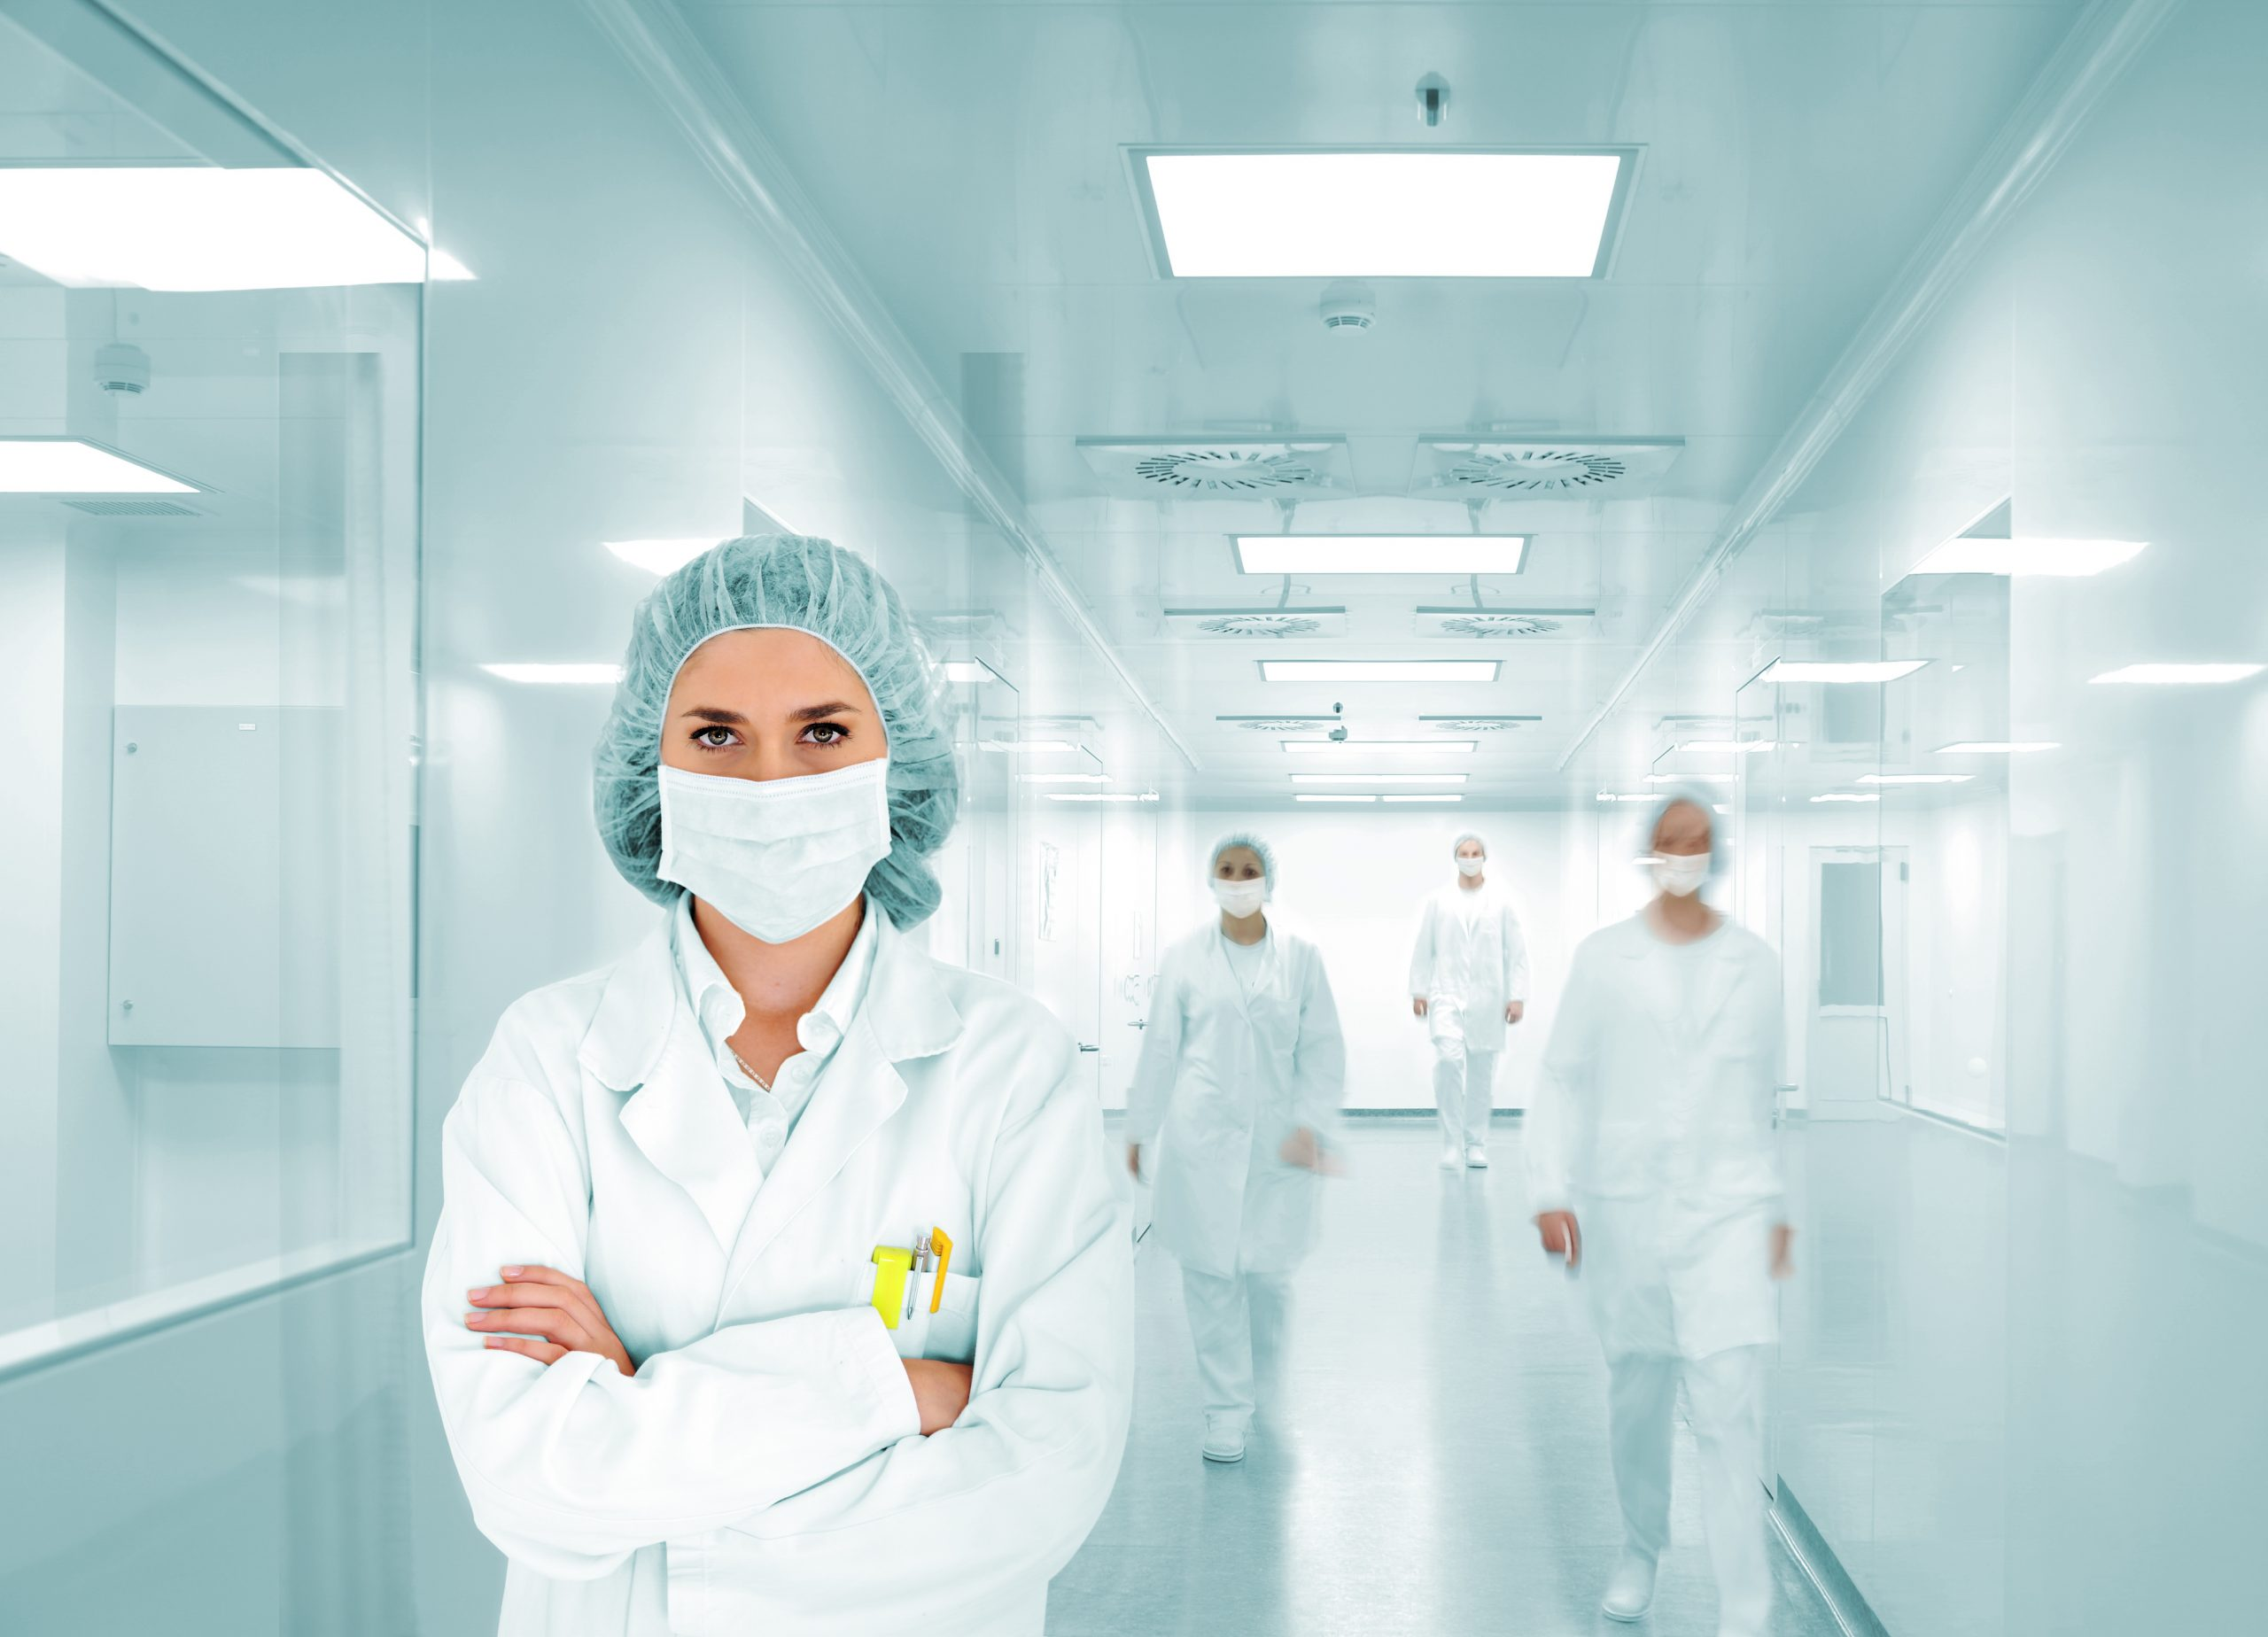 Scientists team at modern hospital lab, group of doctors